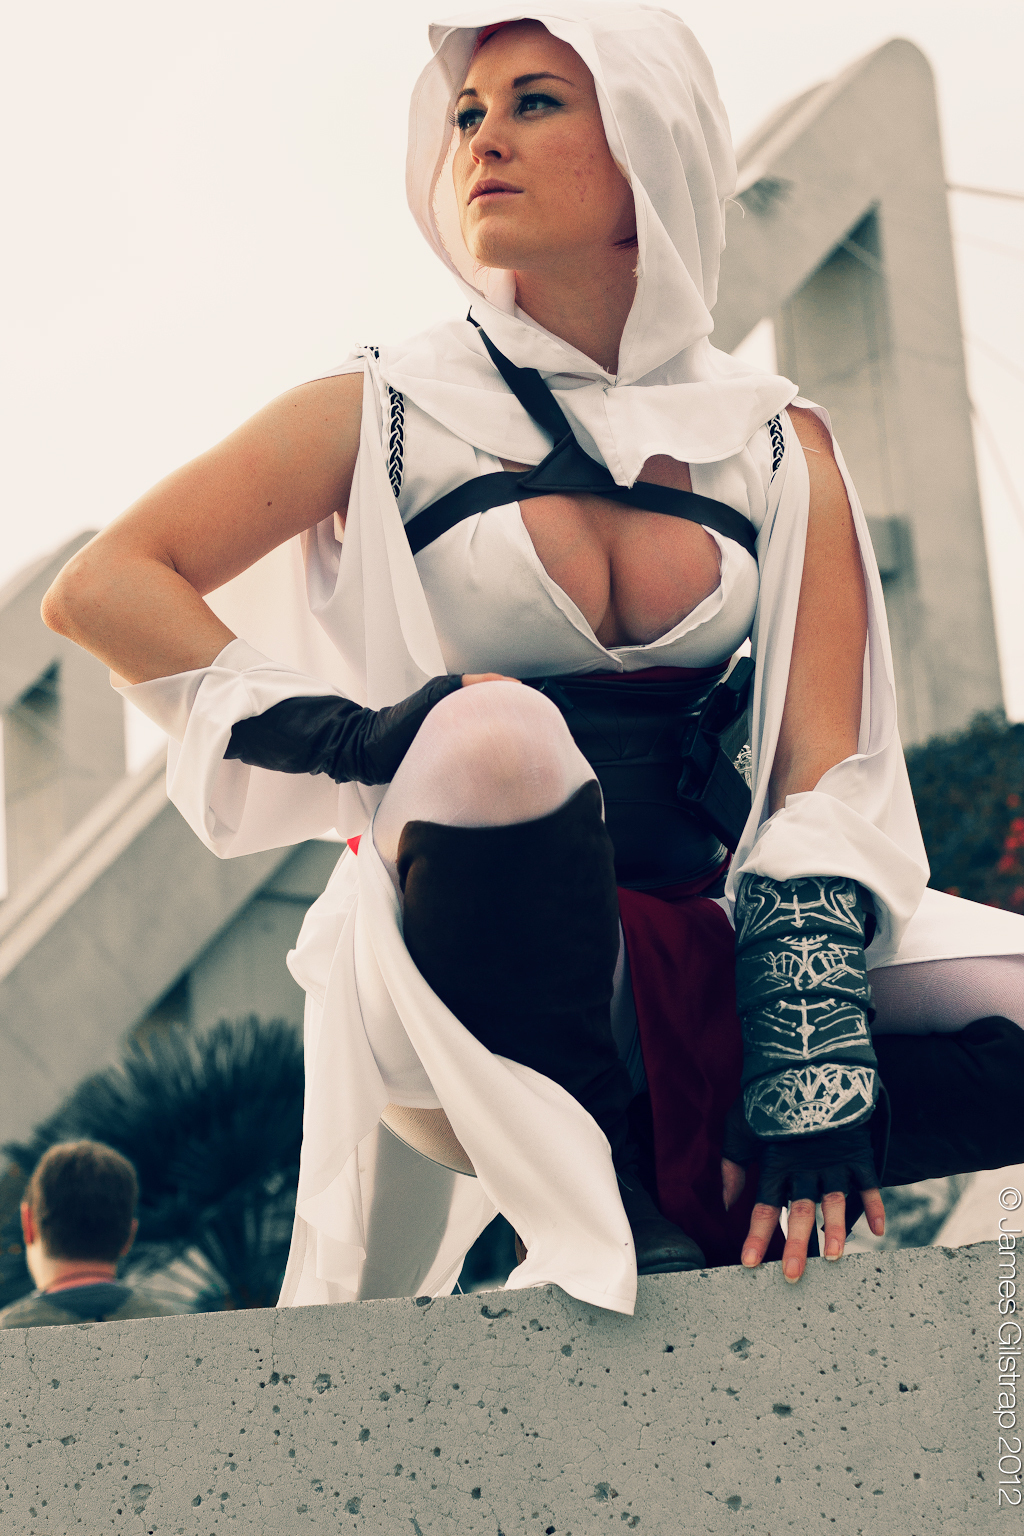 Assasin's creed cosplay porn sexy porn star